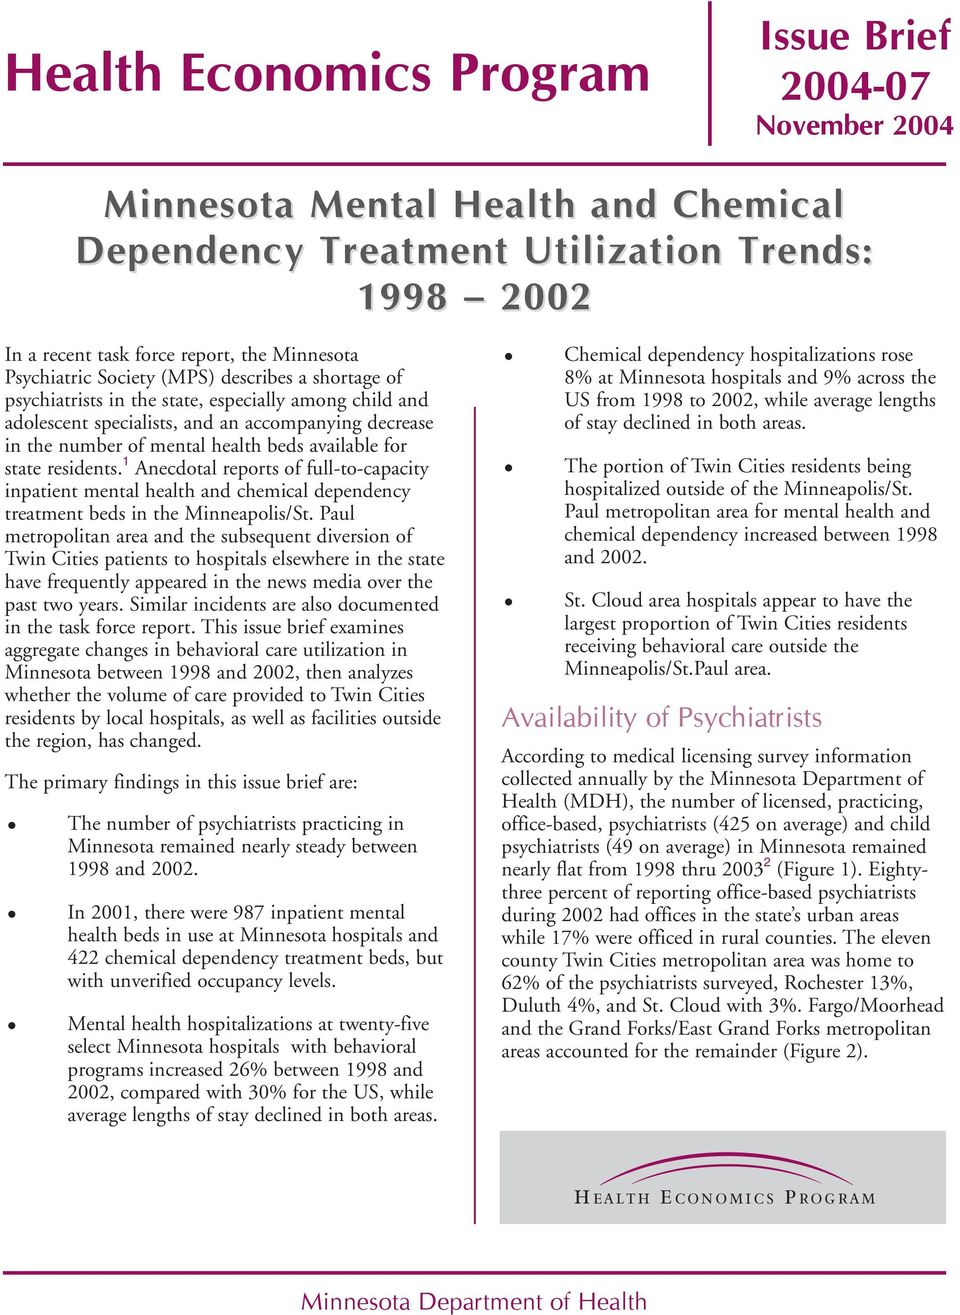 state residents. 1 Anecdotal reports of full-to-capacity inpatient mental health and chemical dependency treatment beds in the Minneapolis/St.